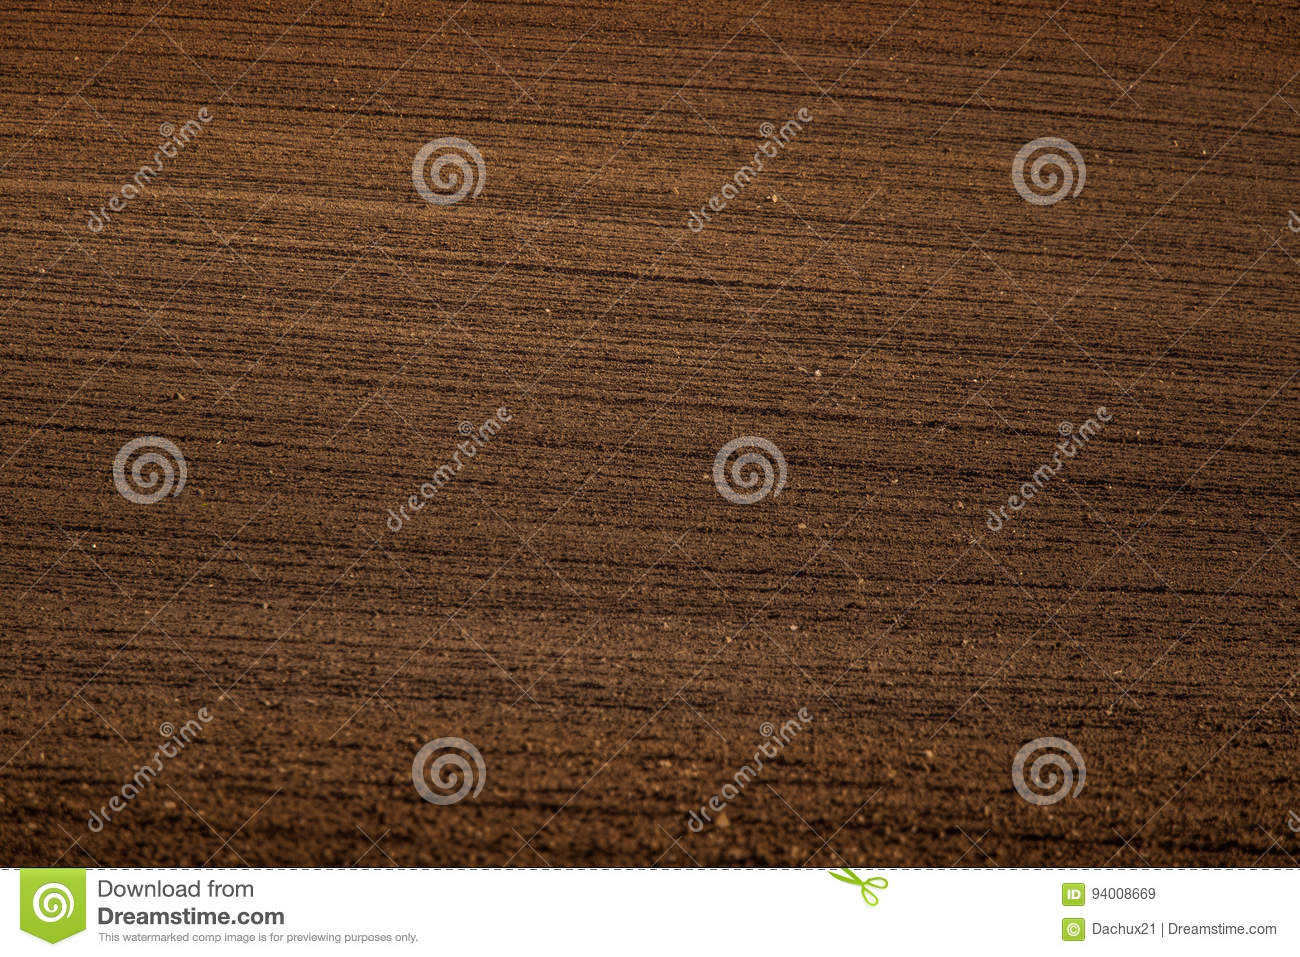 A beautiful brown pattern on a field in spring. Abstract, textured background